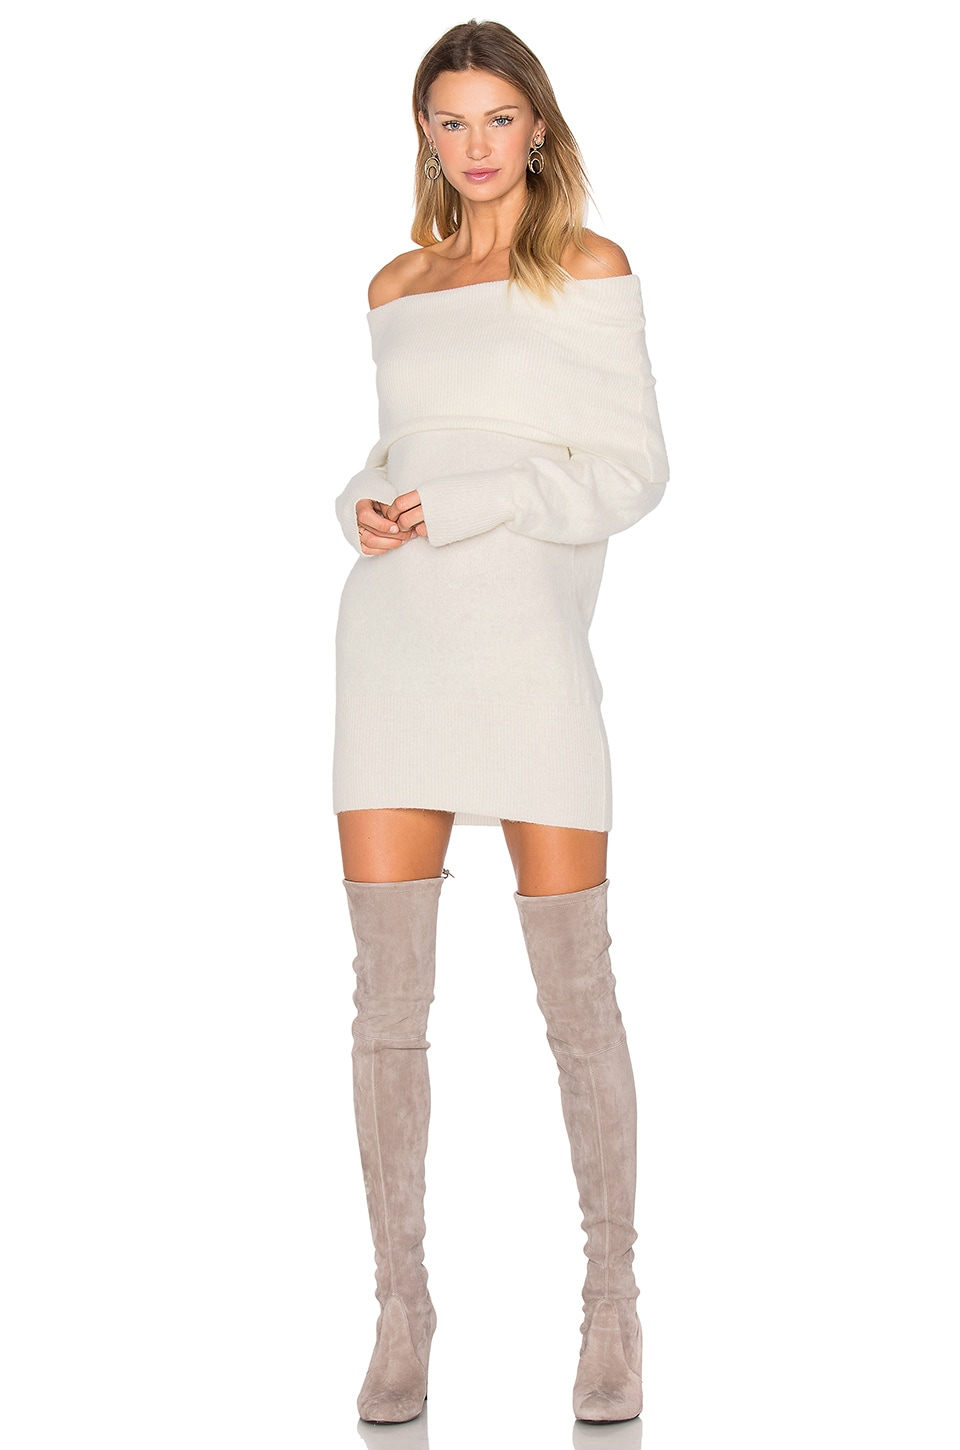 292b83830ba KENDALL + KYLIE Fuzzy Knit Off The Shoulder Dress in Off White